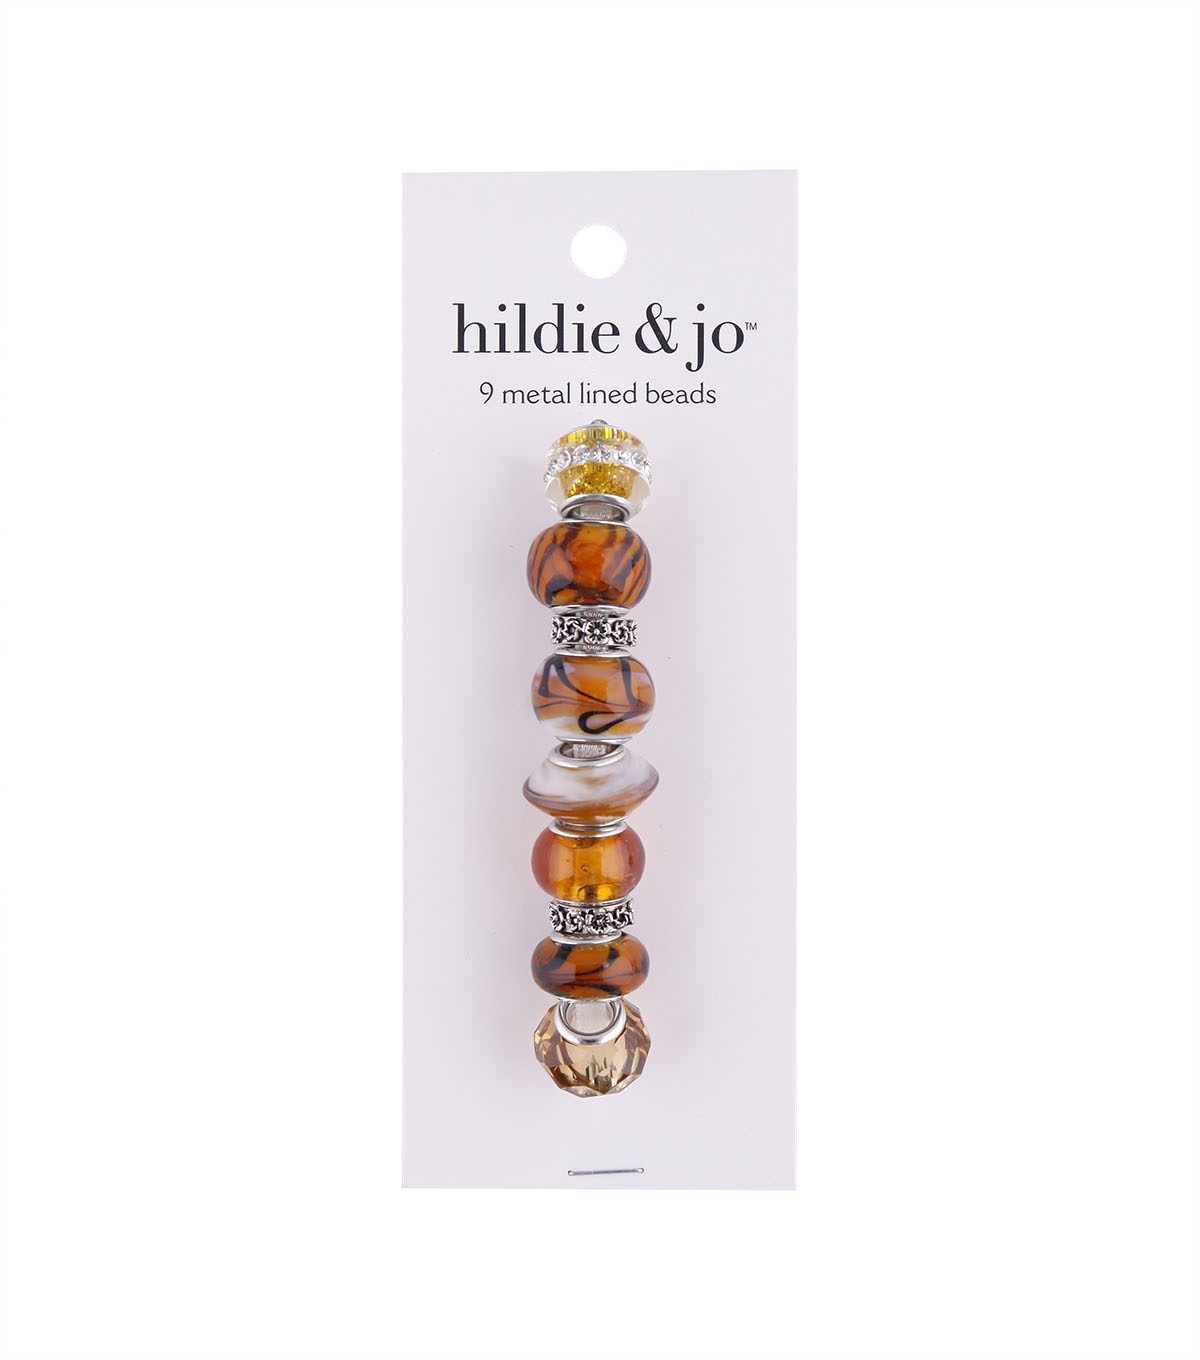 hildie & jo™ Mix & Mingle Metal Lined Glass Beads-Brown